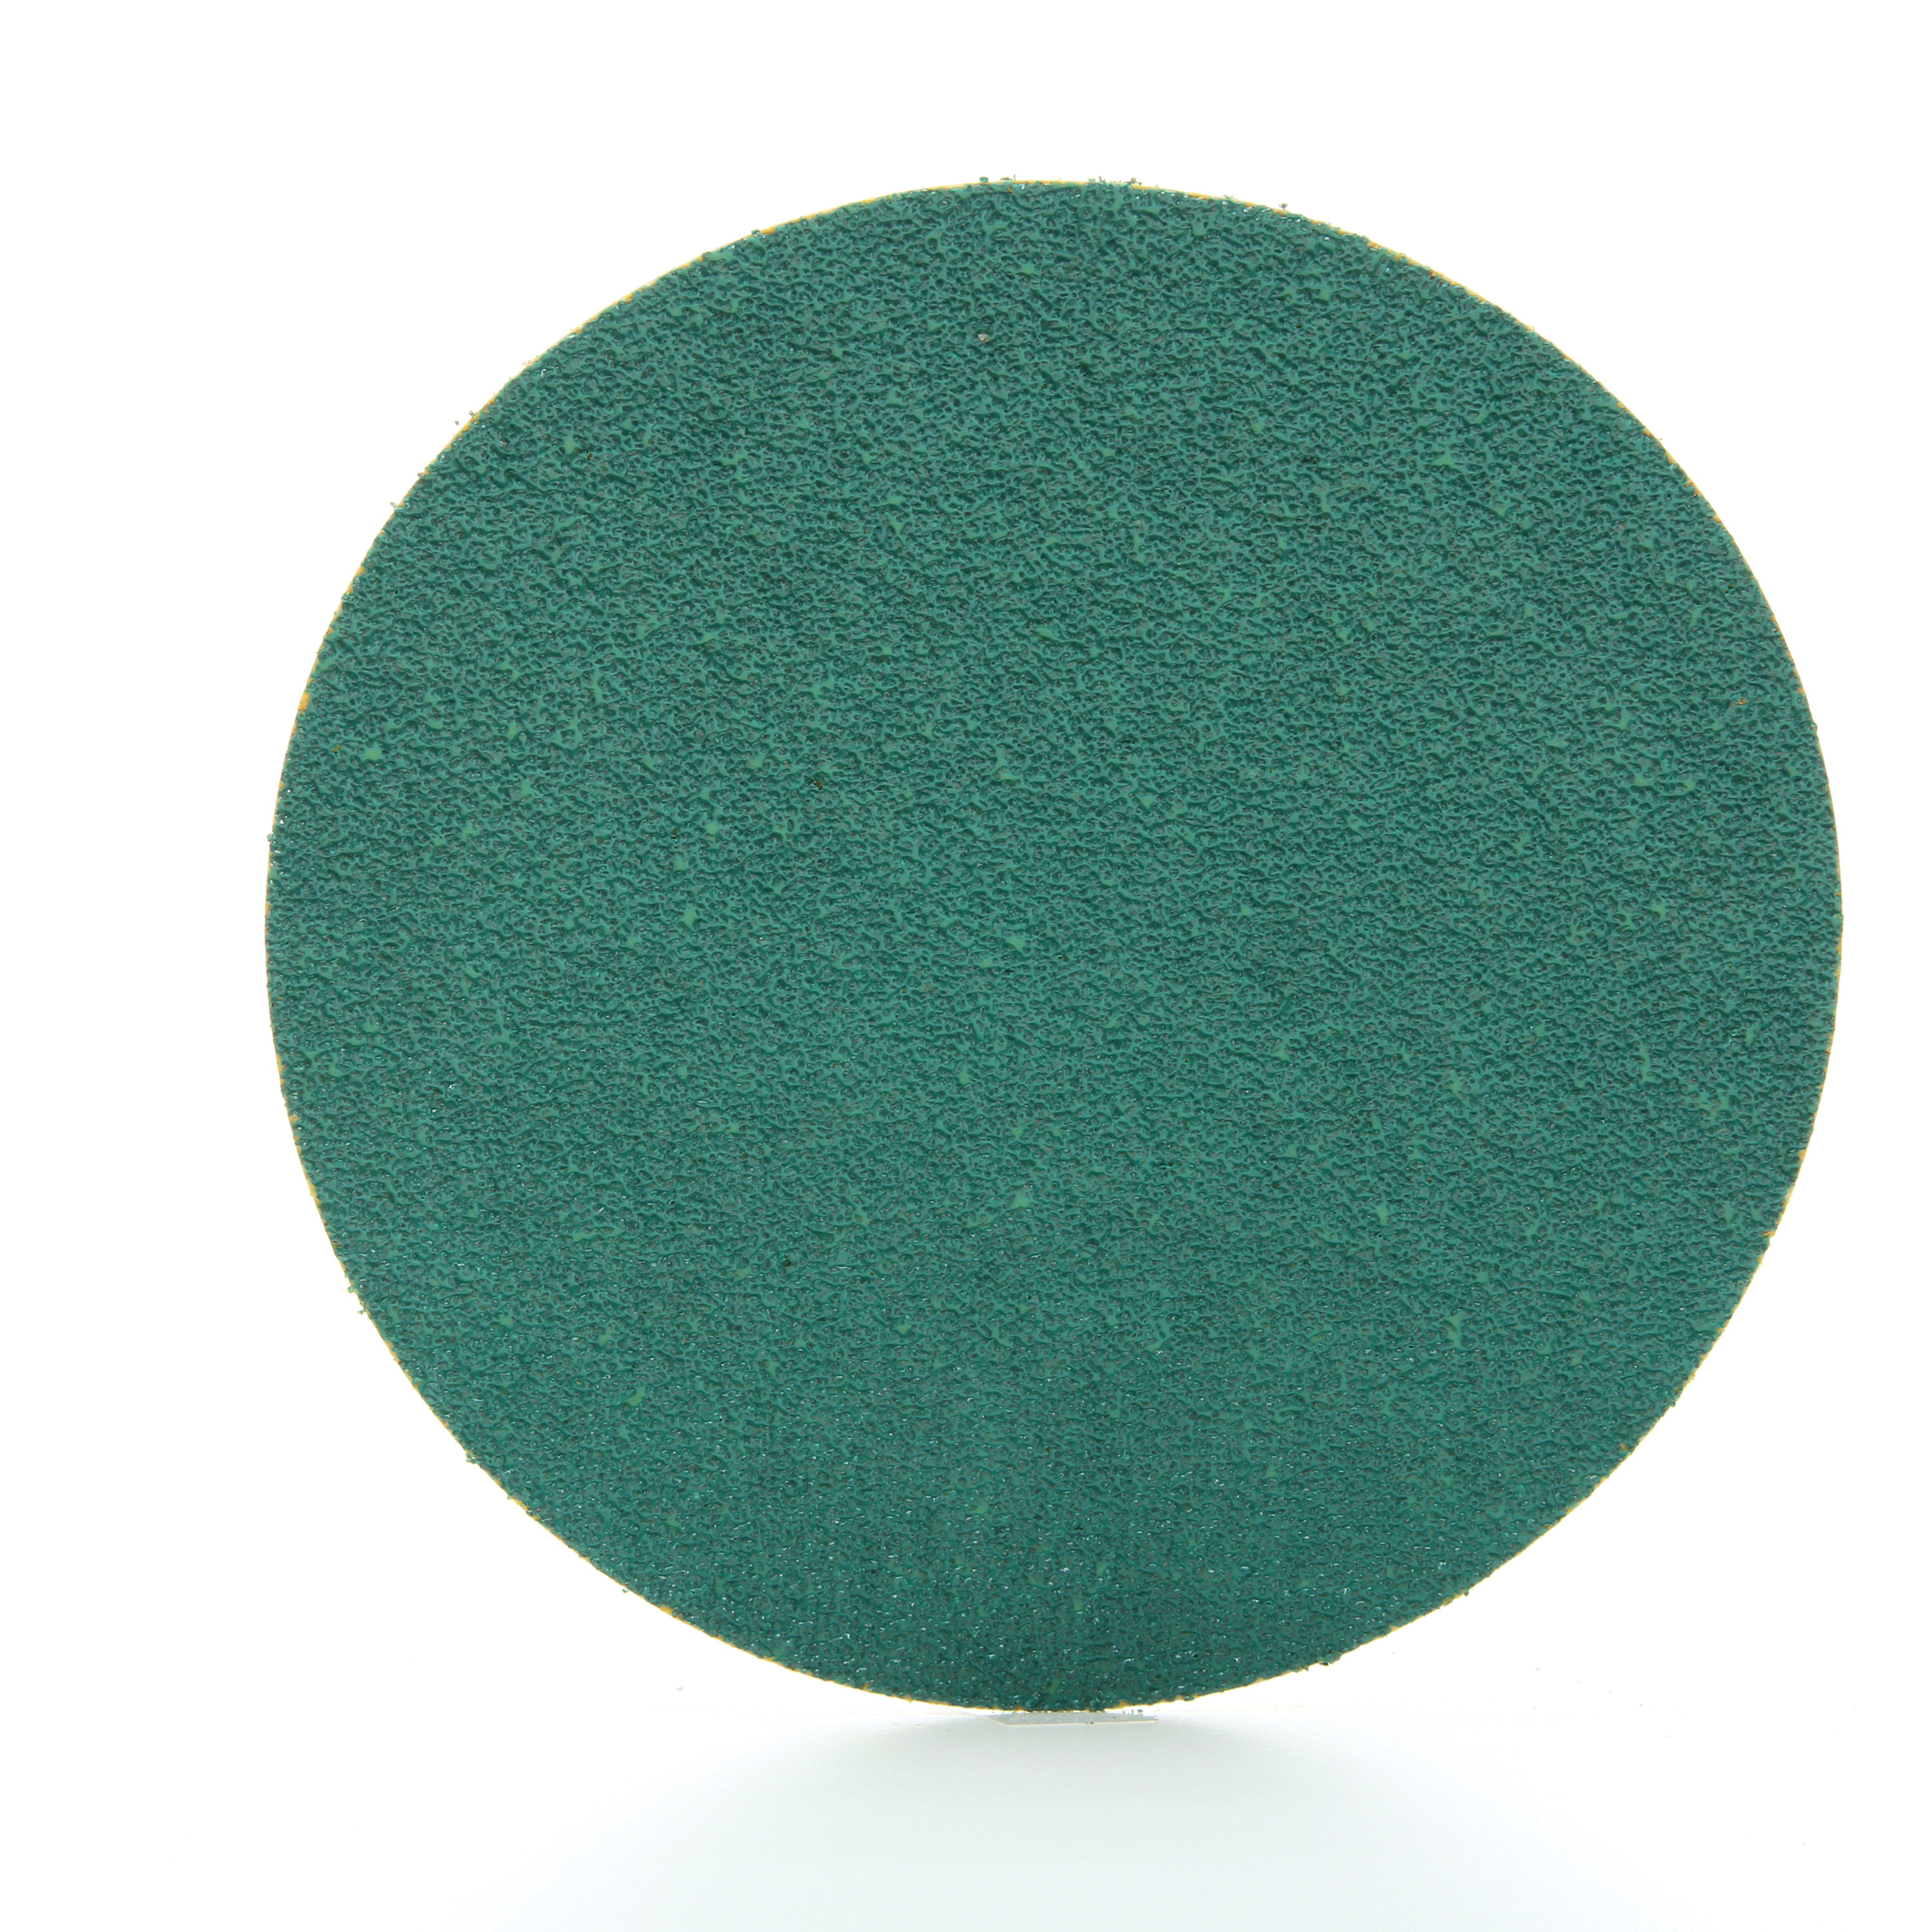 3M™ Green Corps™ 051131-01547 251U Open Coated PSA Indexable Grooving Blade, 6 in Dia Disc, 40 Grit, Coarse Grade, Aluminum Oxide Abrasive, Paper Backing